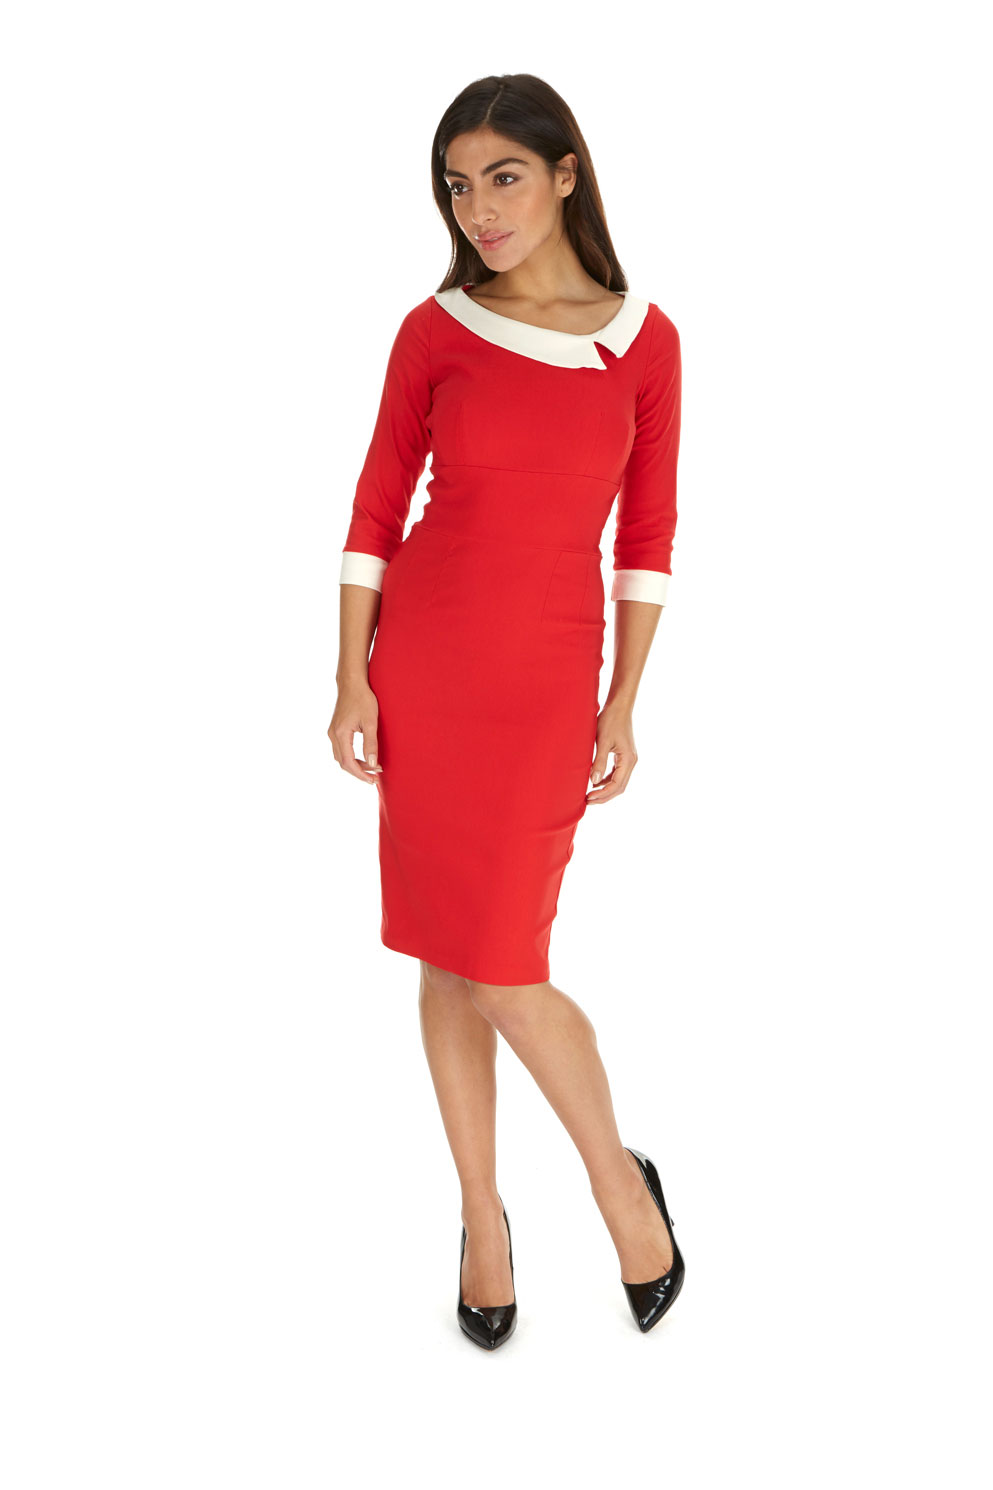 Mistress Red Day Dress The Pretty Dress Company - Ladida Boutique